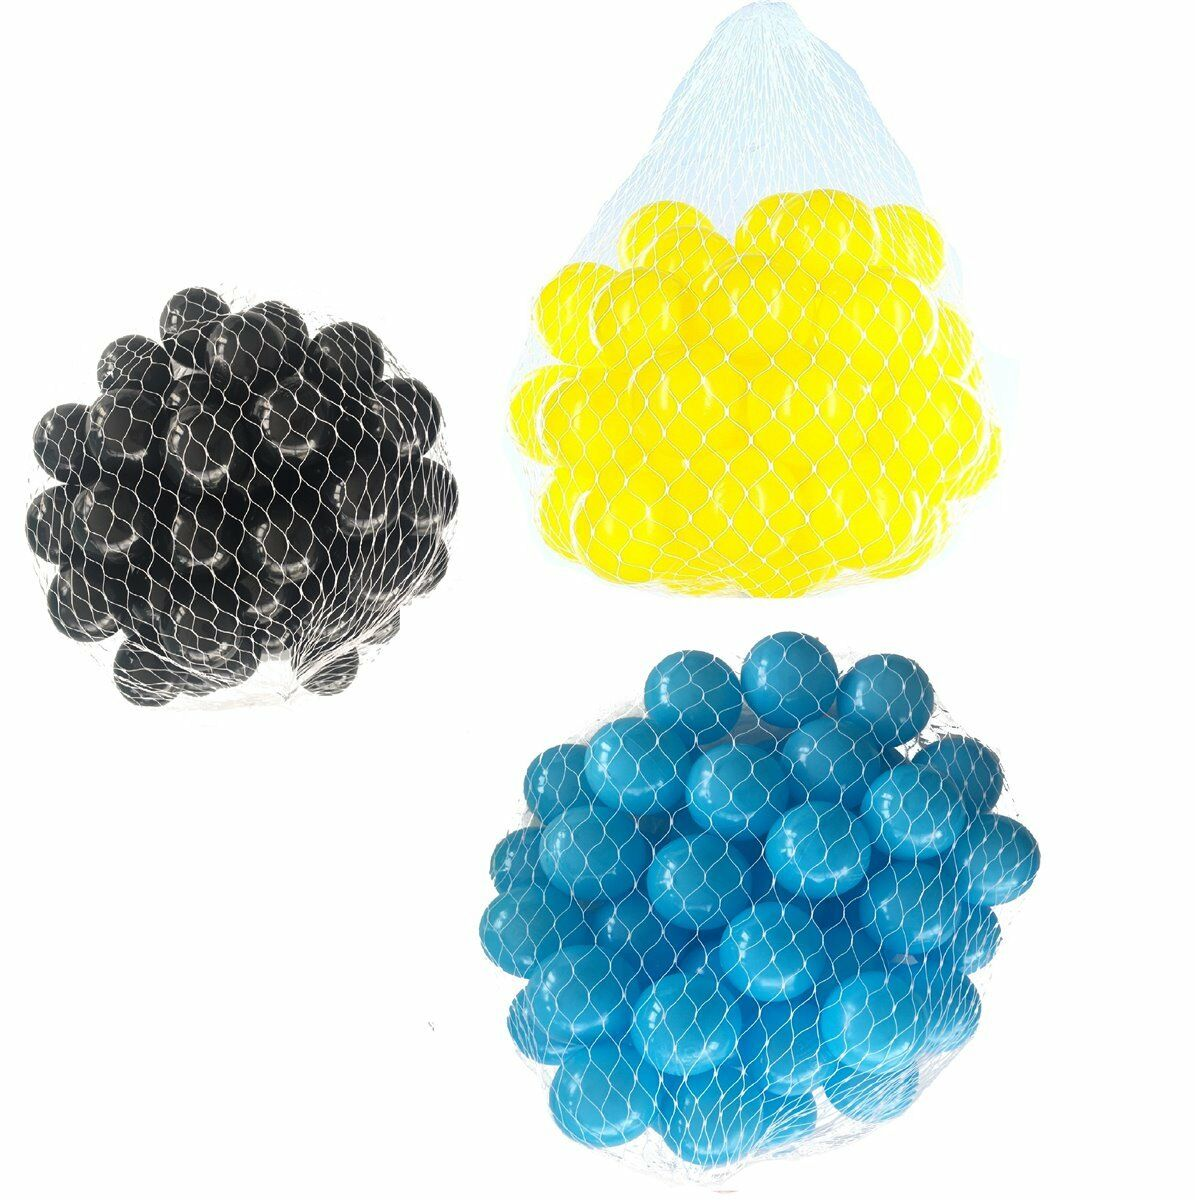 150-9000 Pelotas baño 55mm MIX Turquesa yellow black Mixto colors BABY NIÑO